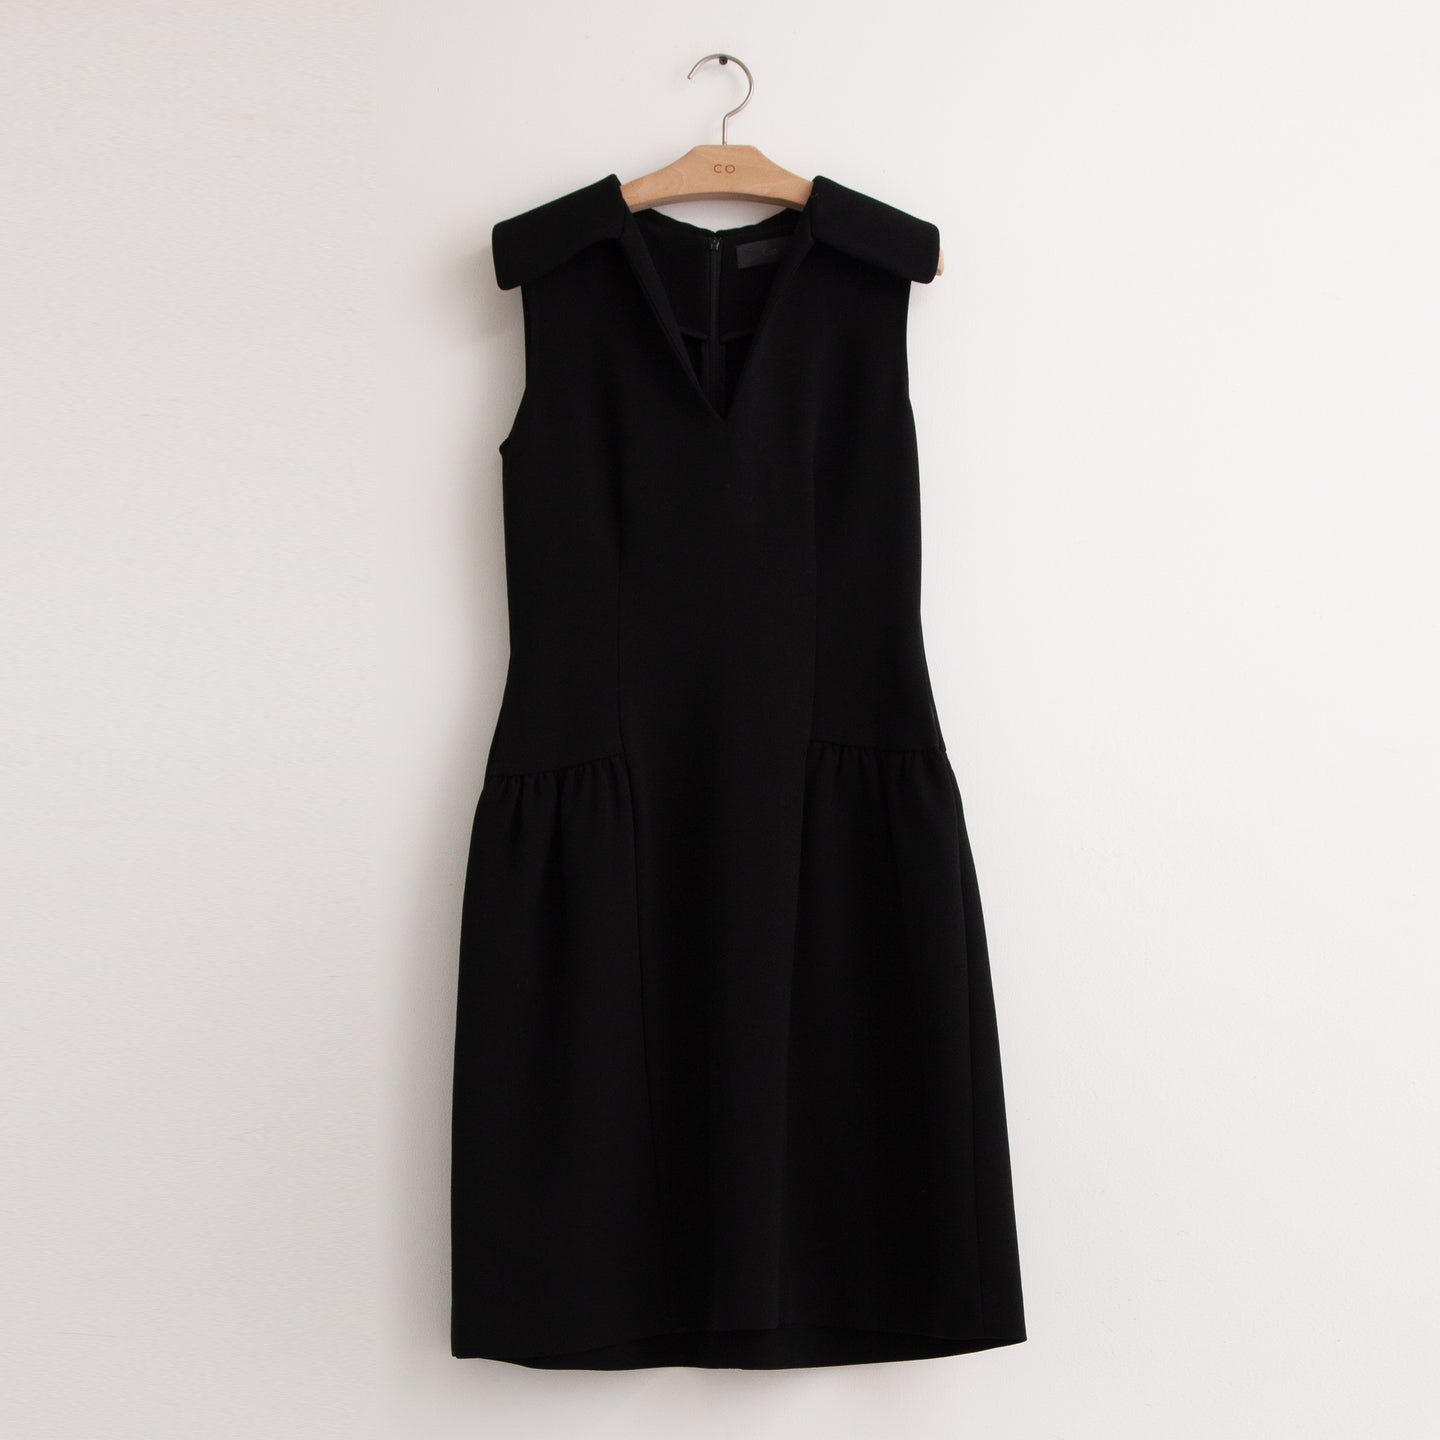 CO - Sleeveless v neck dress with wide collar in black heavy cady crepe